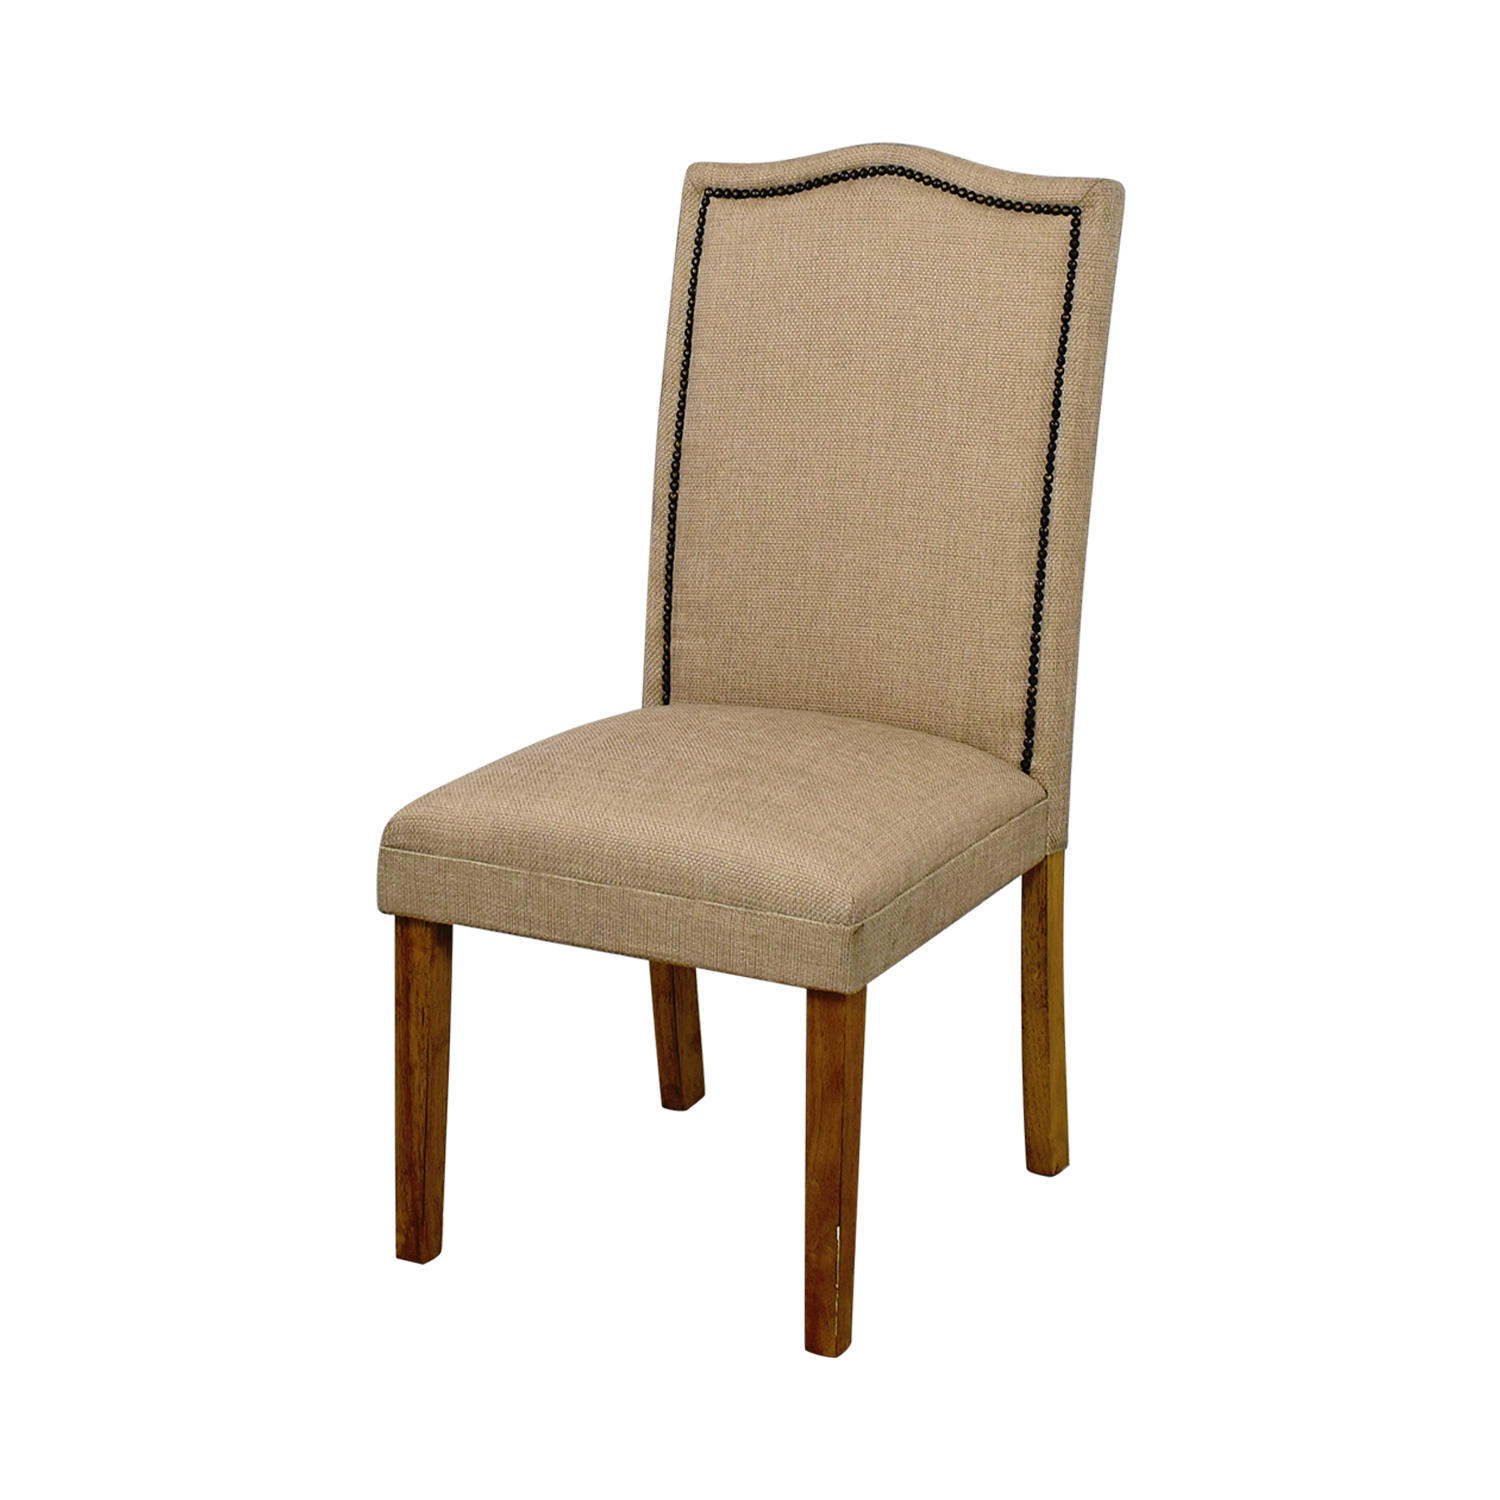 shop Beige High Back Chair with Nailhead Accent online